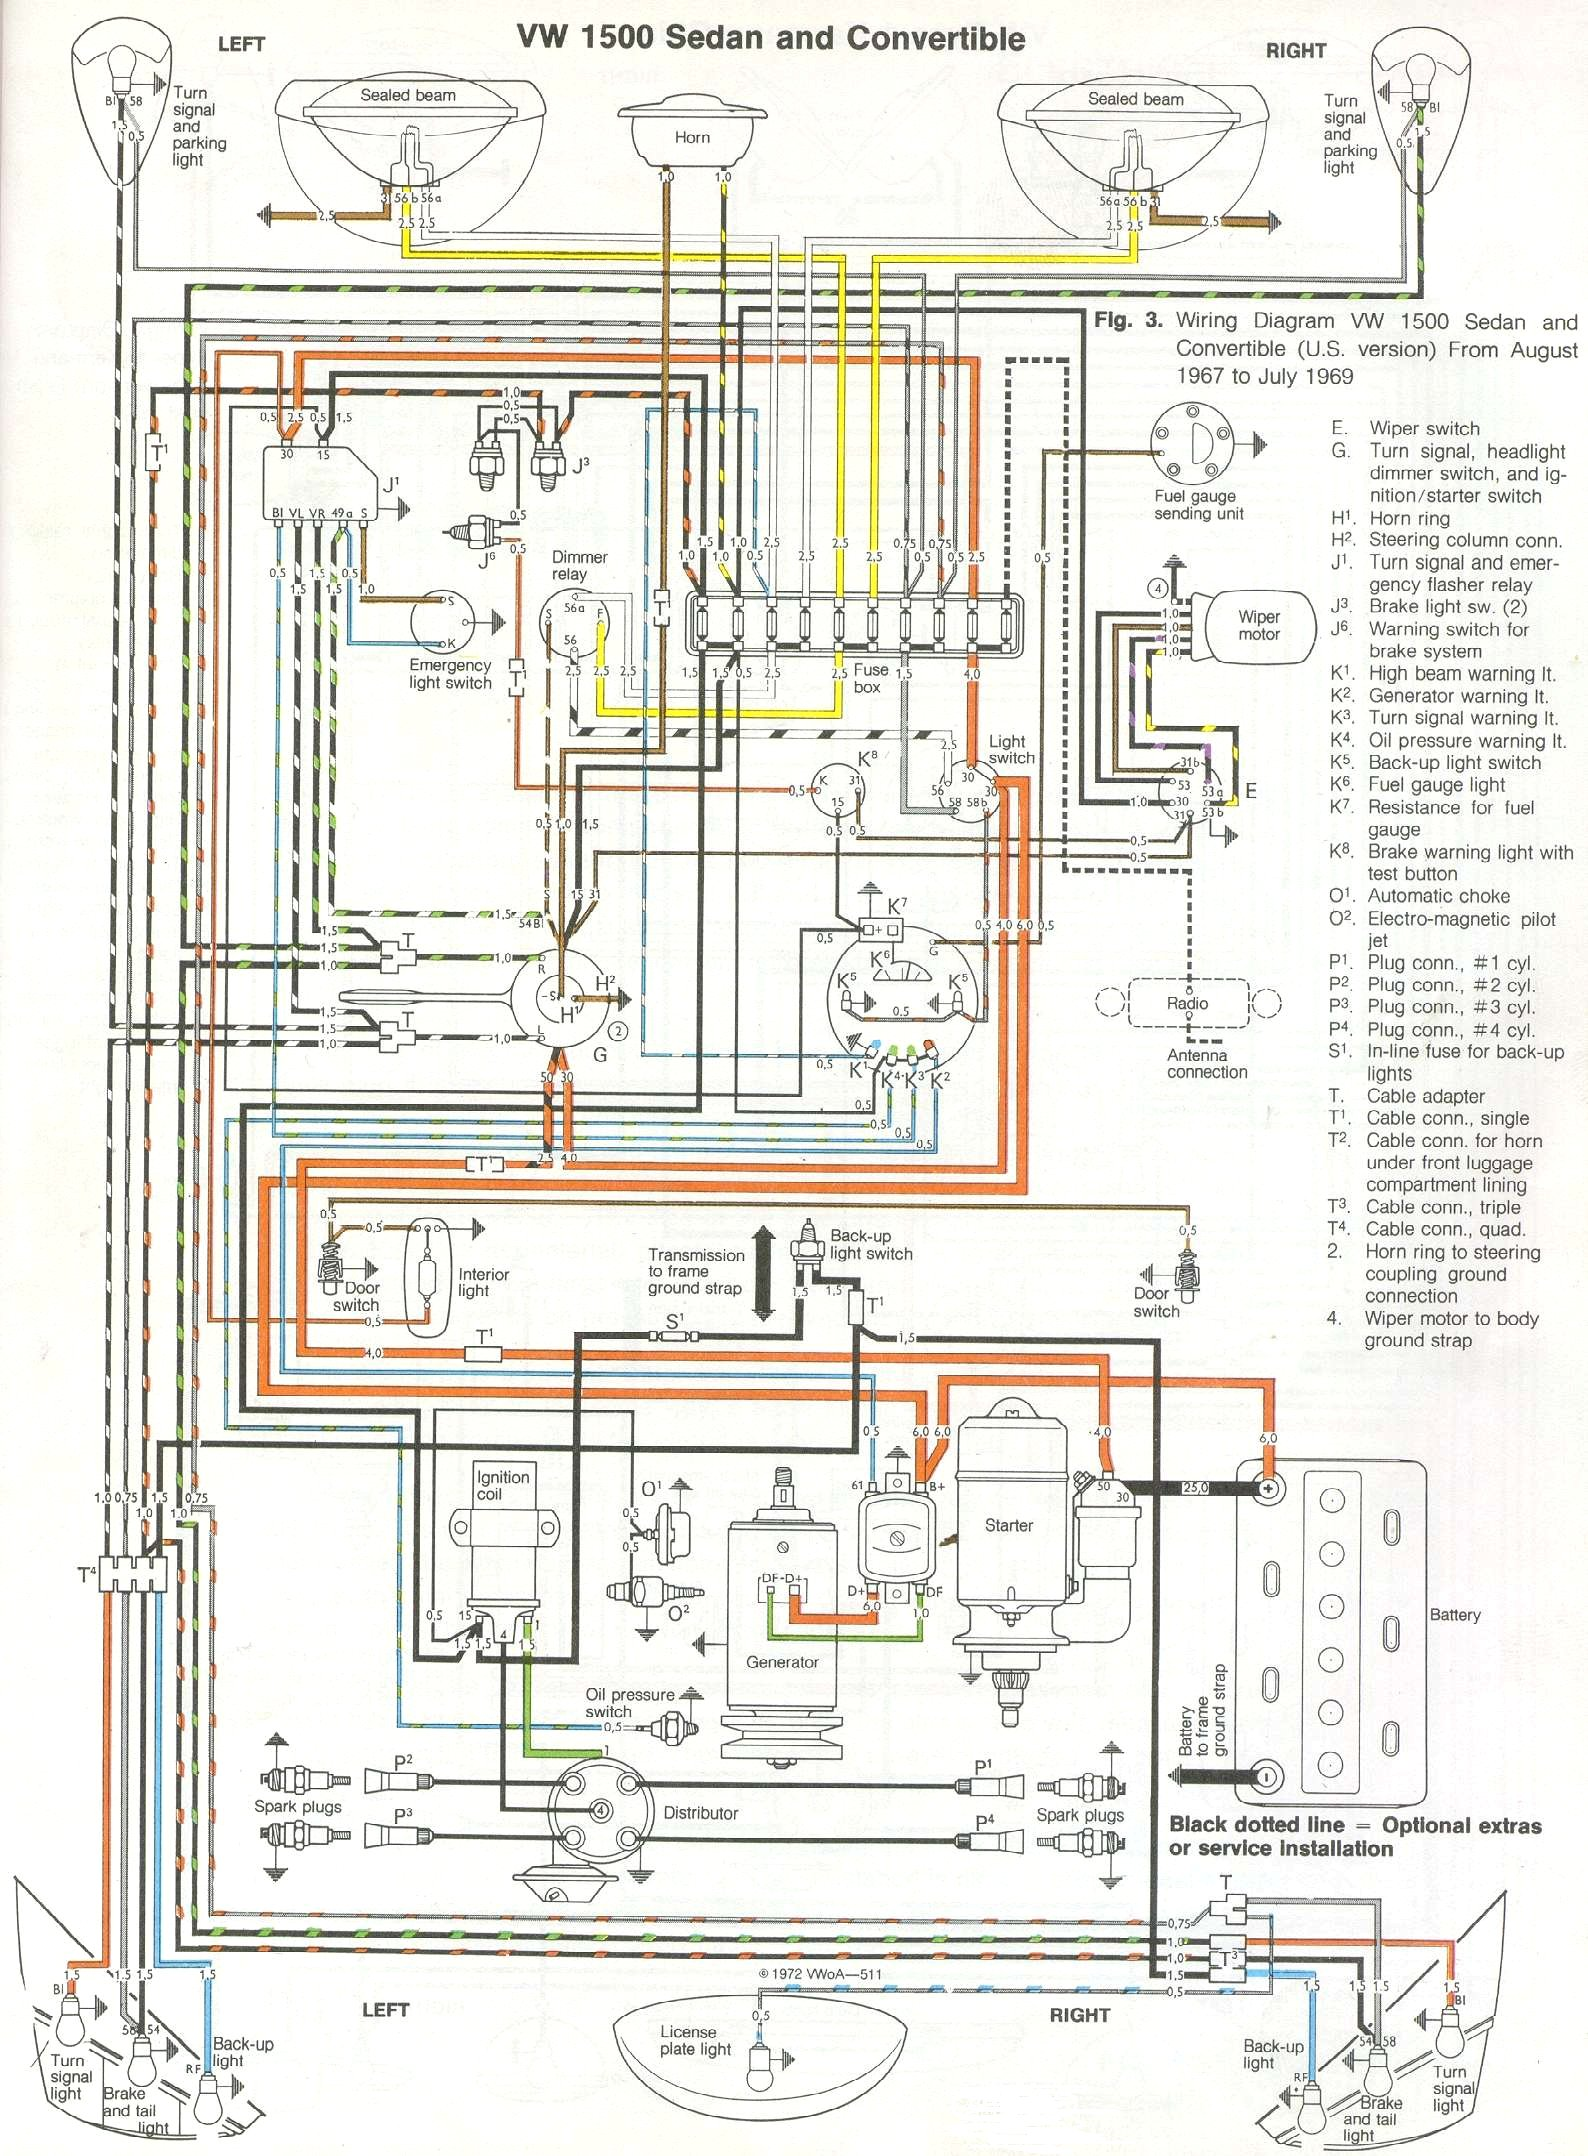 bug_6869 1969 71 beetle wiring diagram thegoldenbug com vw bug wiring diagram at bayanpartner.co